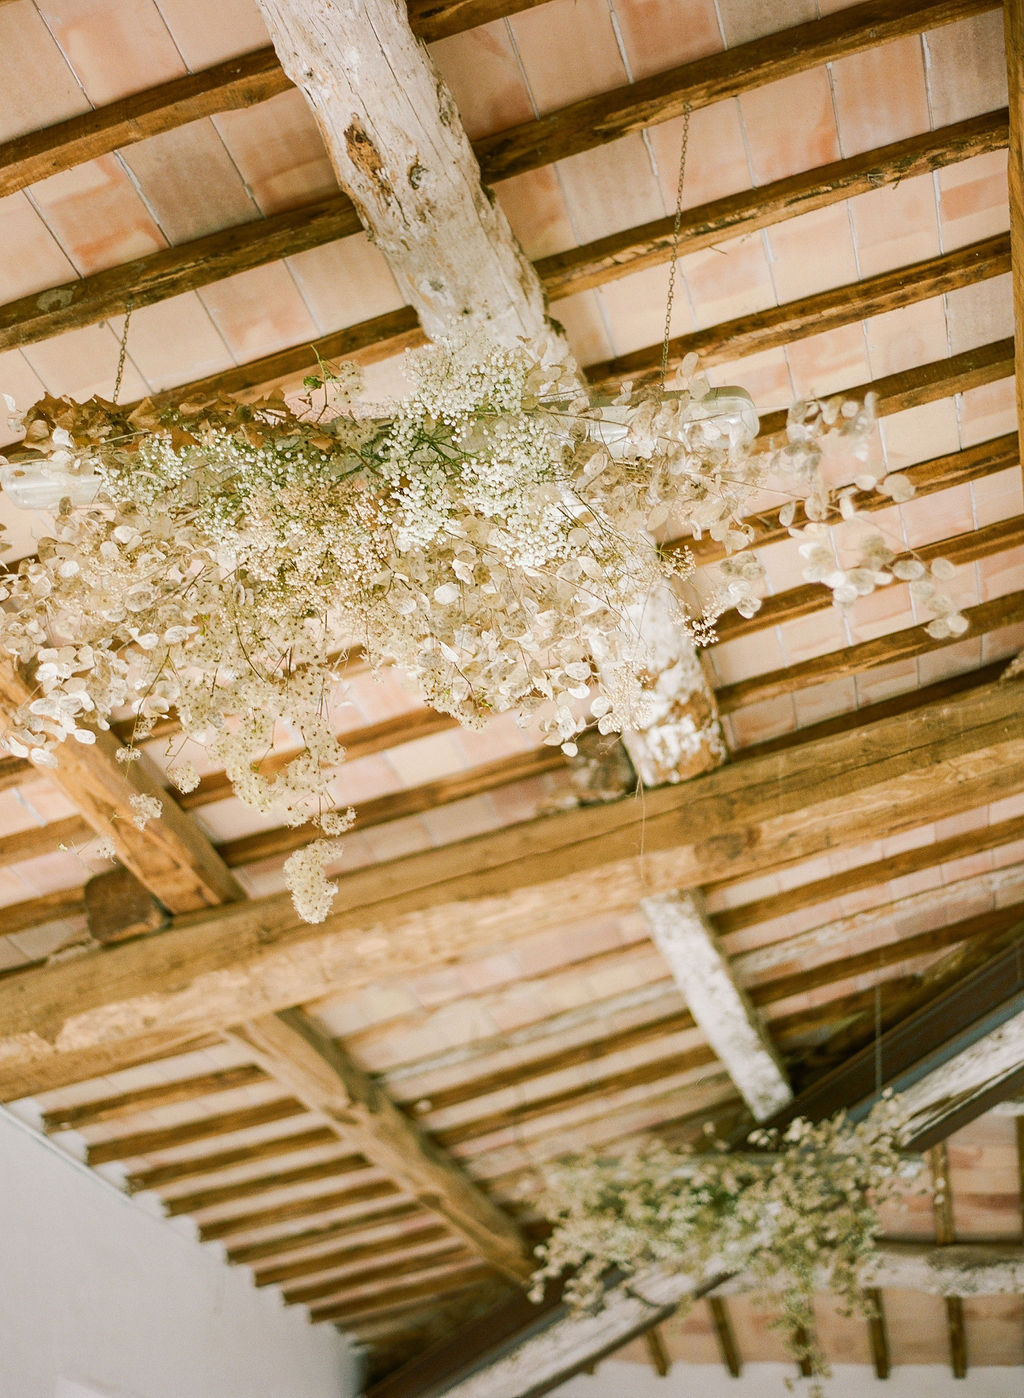 babys breath hanging from ceiling